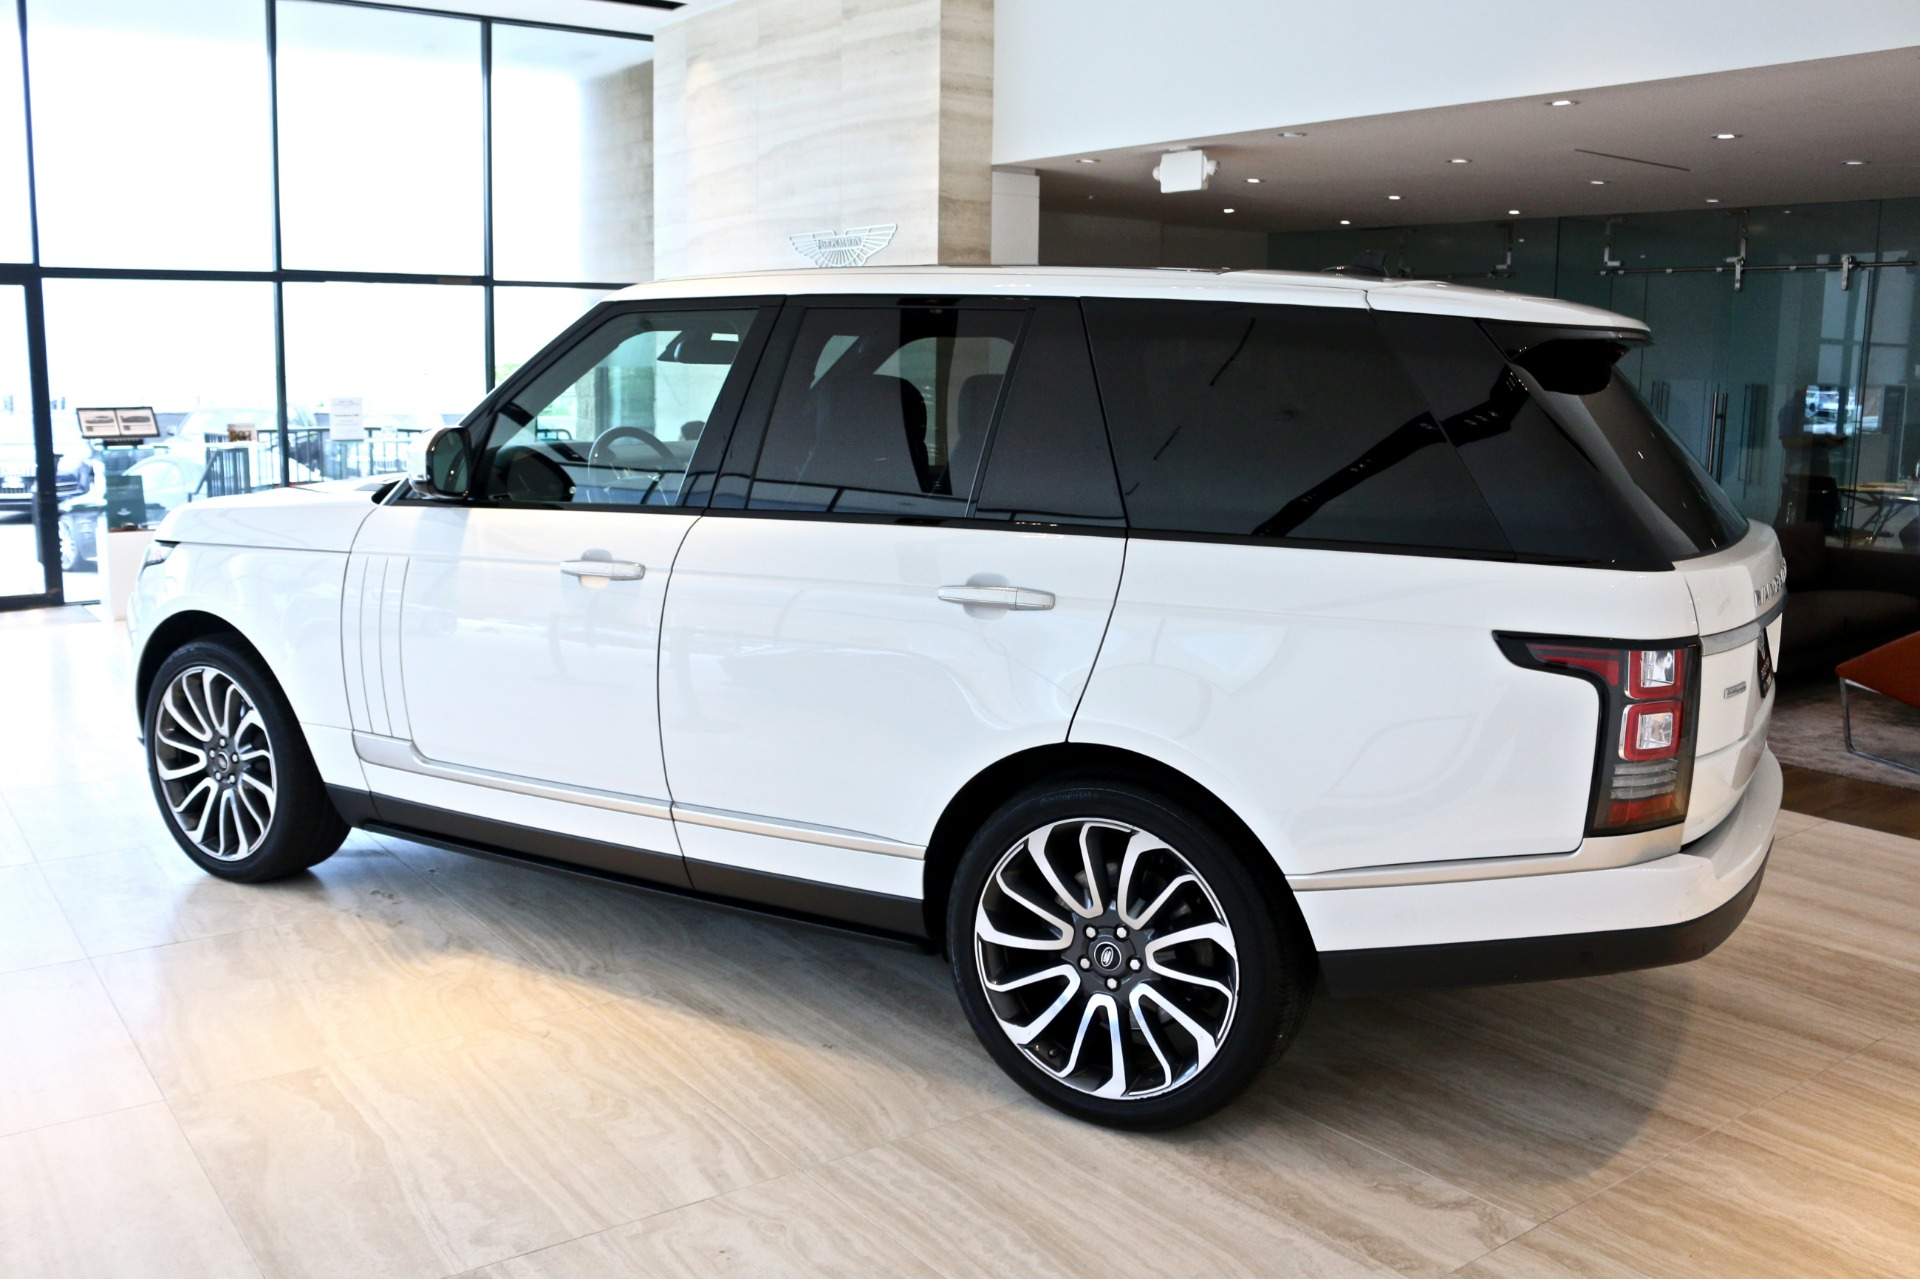 Used-2015-Land-Rover-Range-Rover-Autobiography